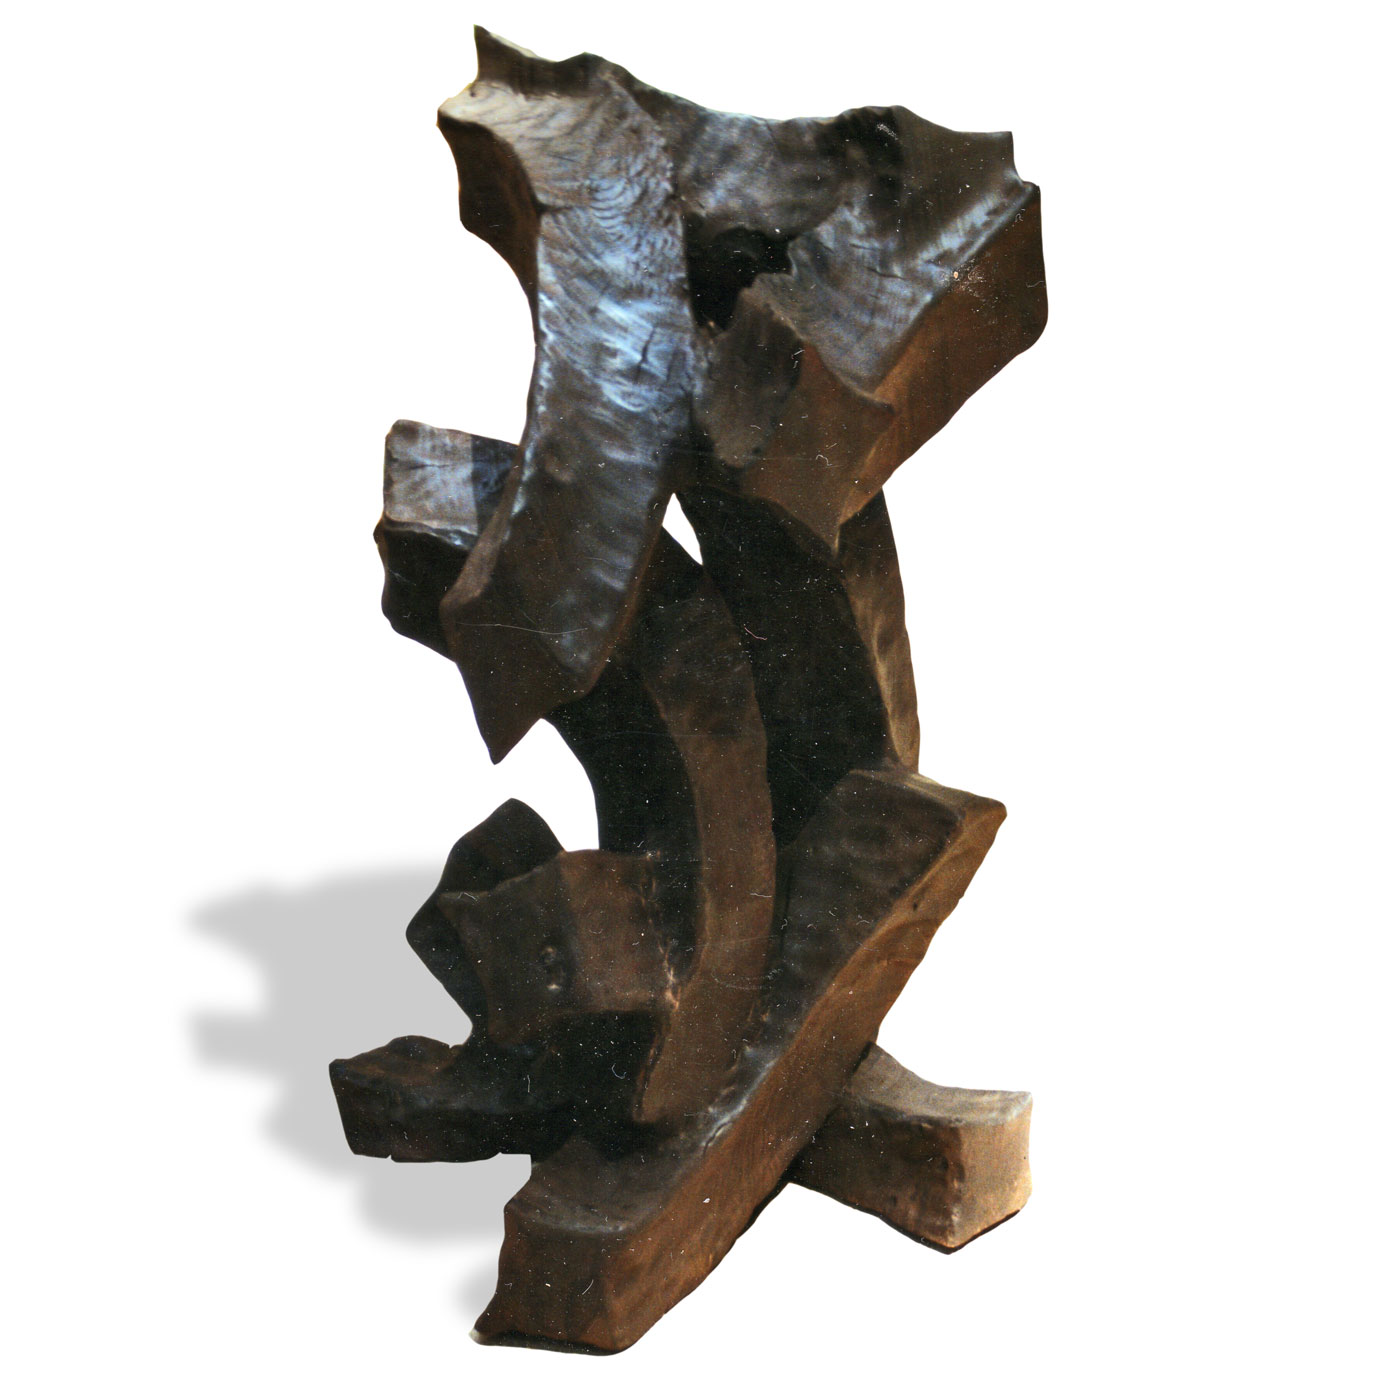 PULL,  © 1994, burned, brushed and fixed chestnut wood, made of one tree trunk, 65 x 50 x 50 cm